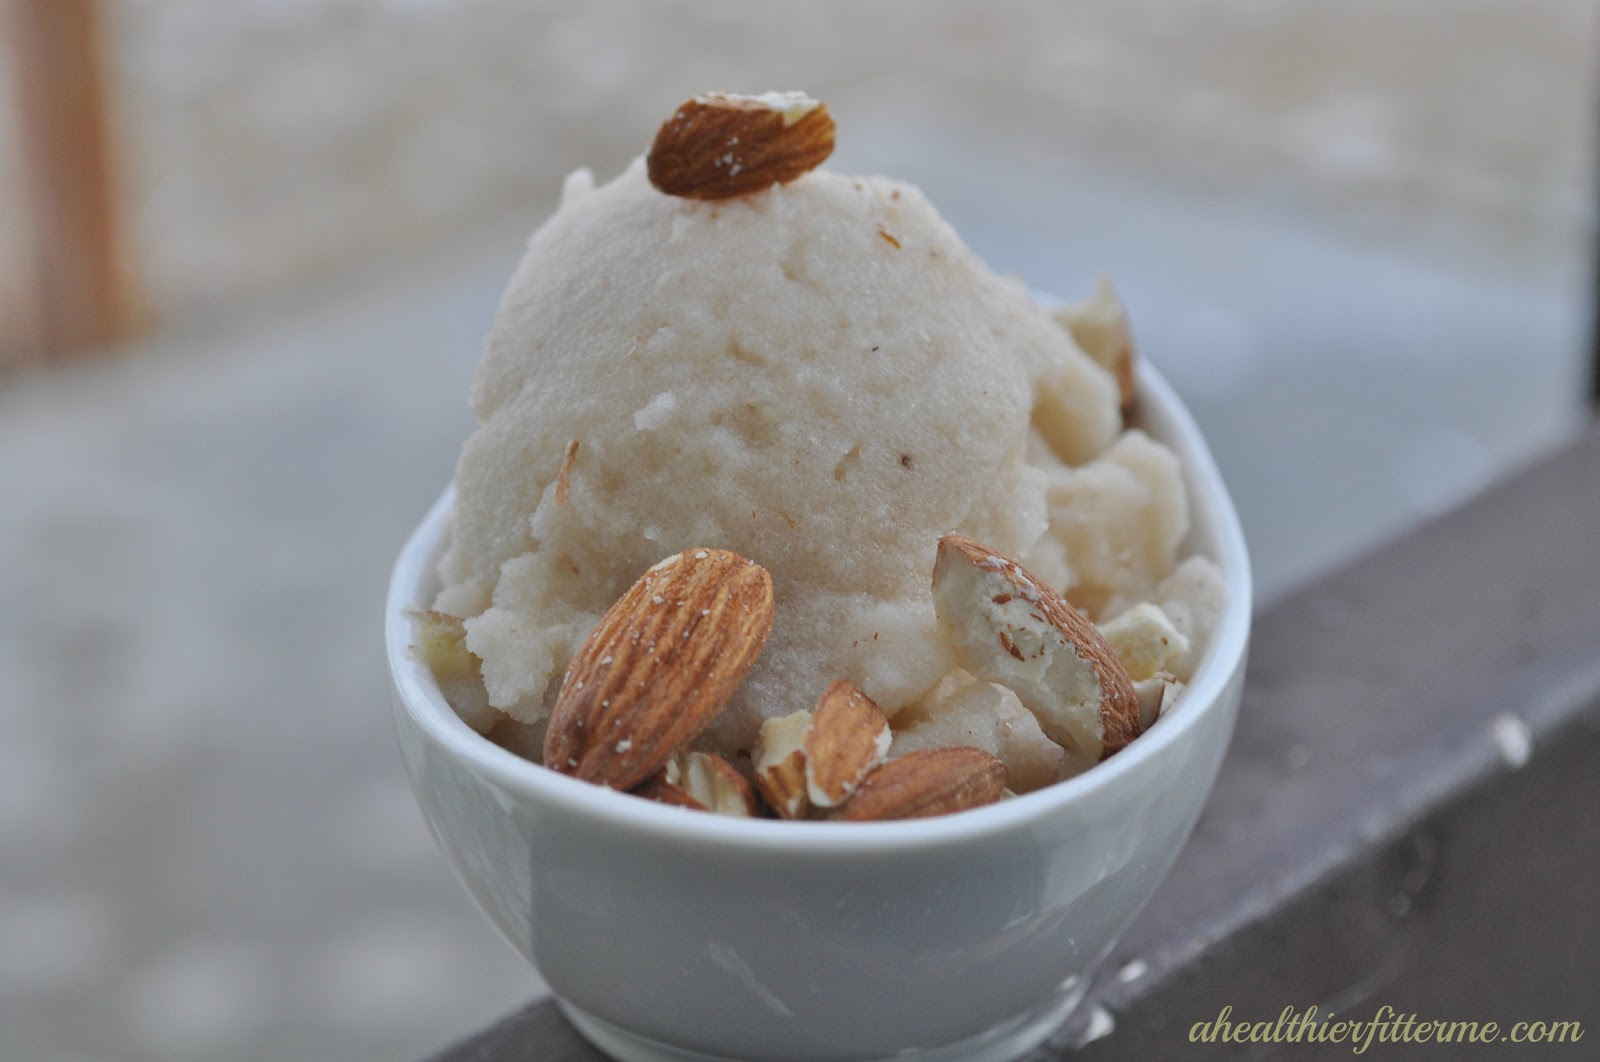 http://www.ahealthierfitterme.com/2013/02/guiltless-almond-sorbet-featuring.html